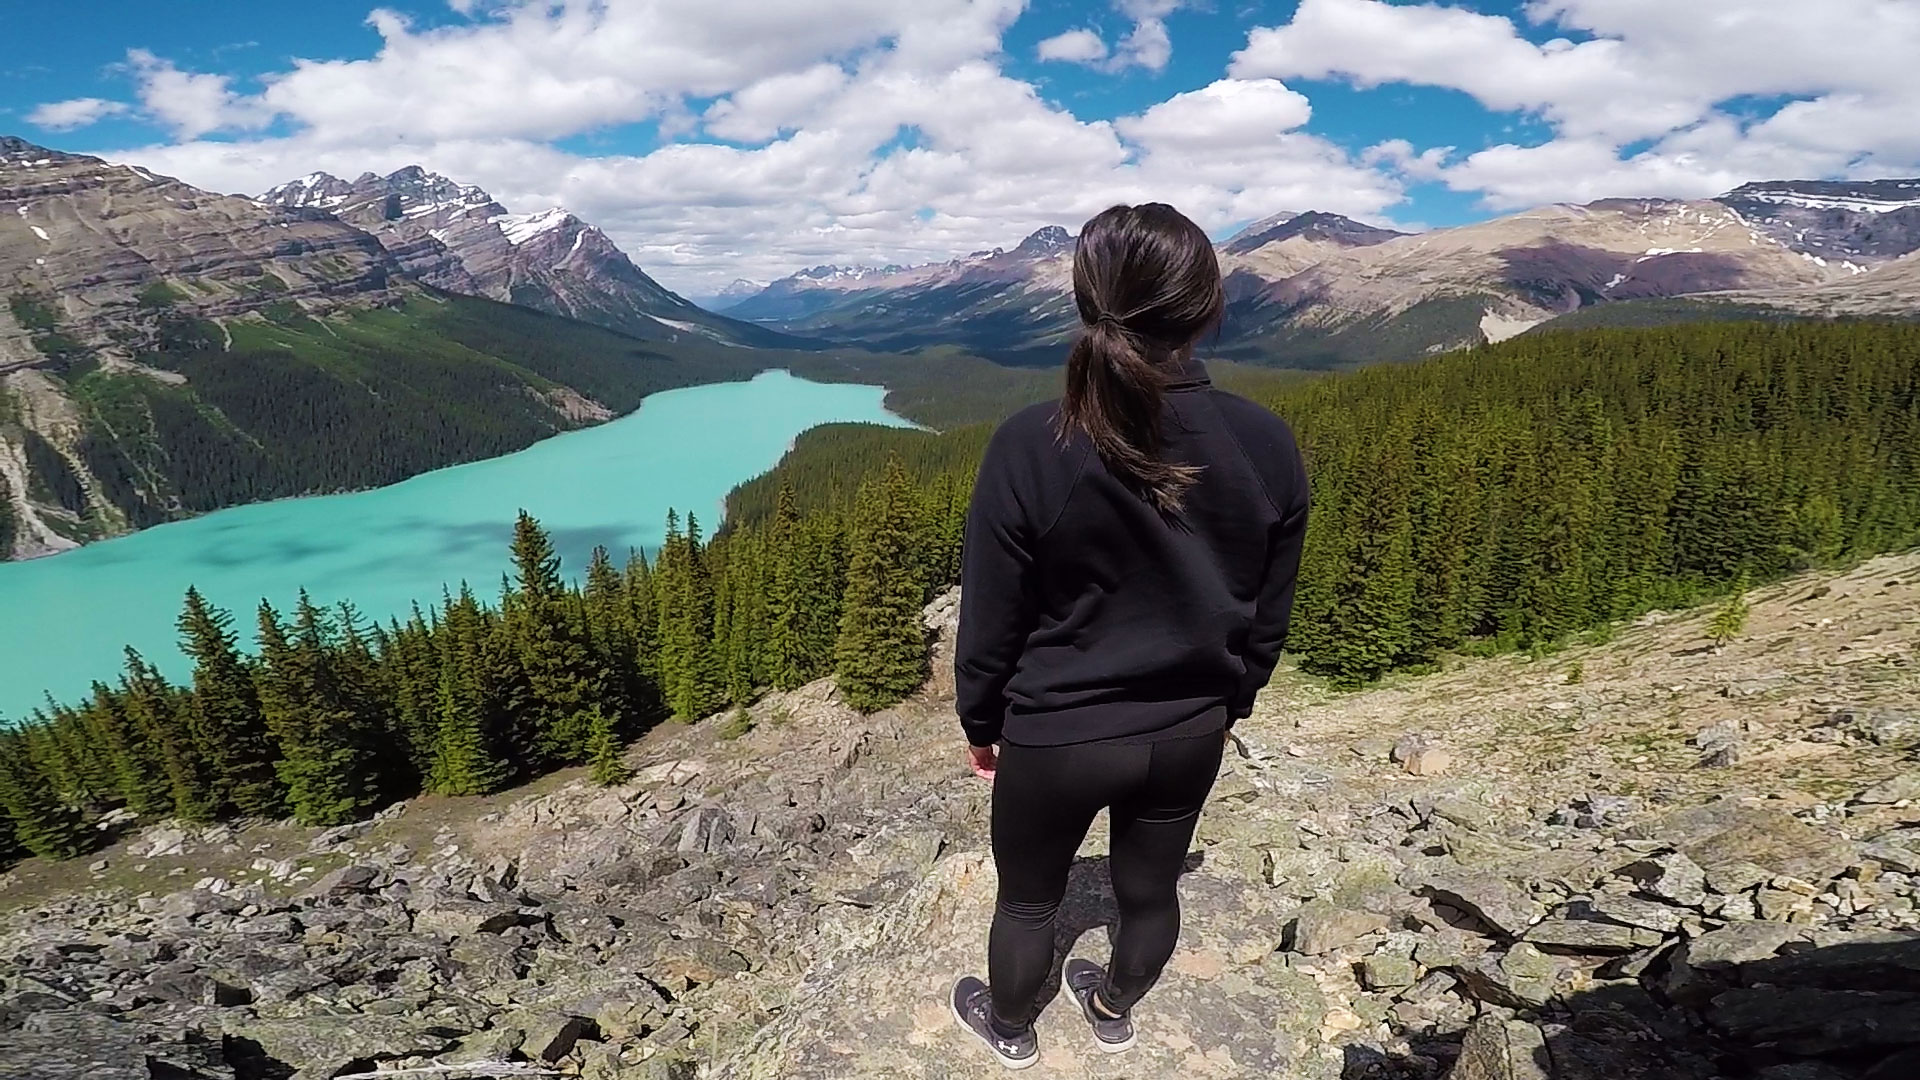 Guided active adventures in Canada in the Rockies.